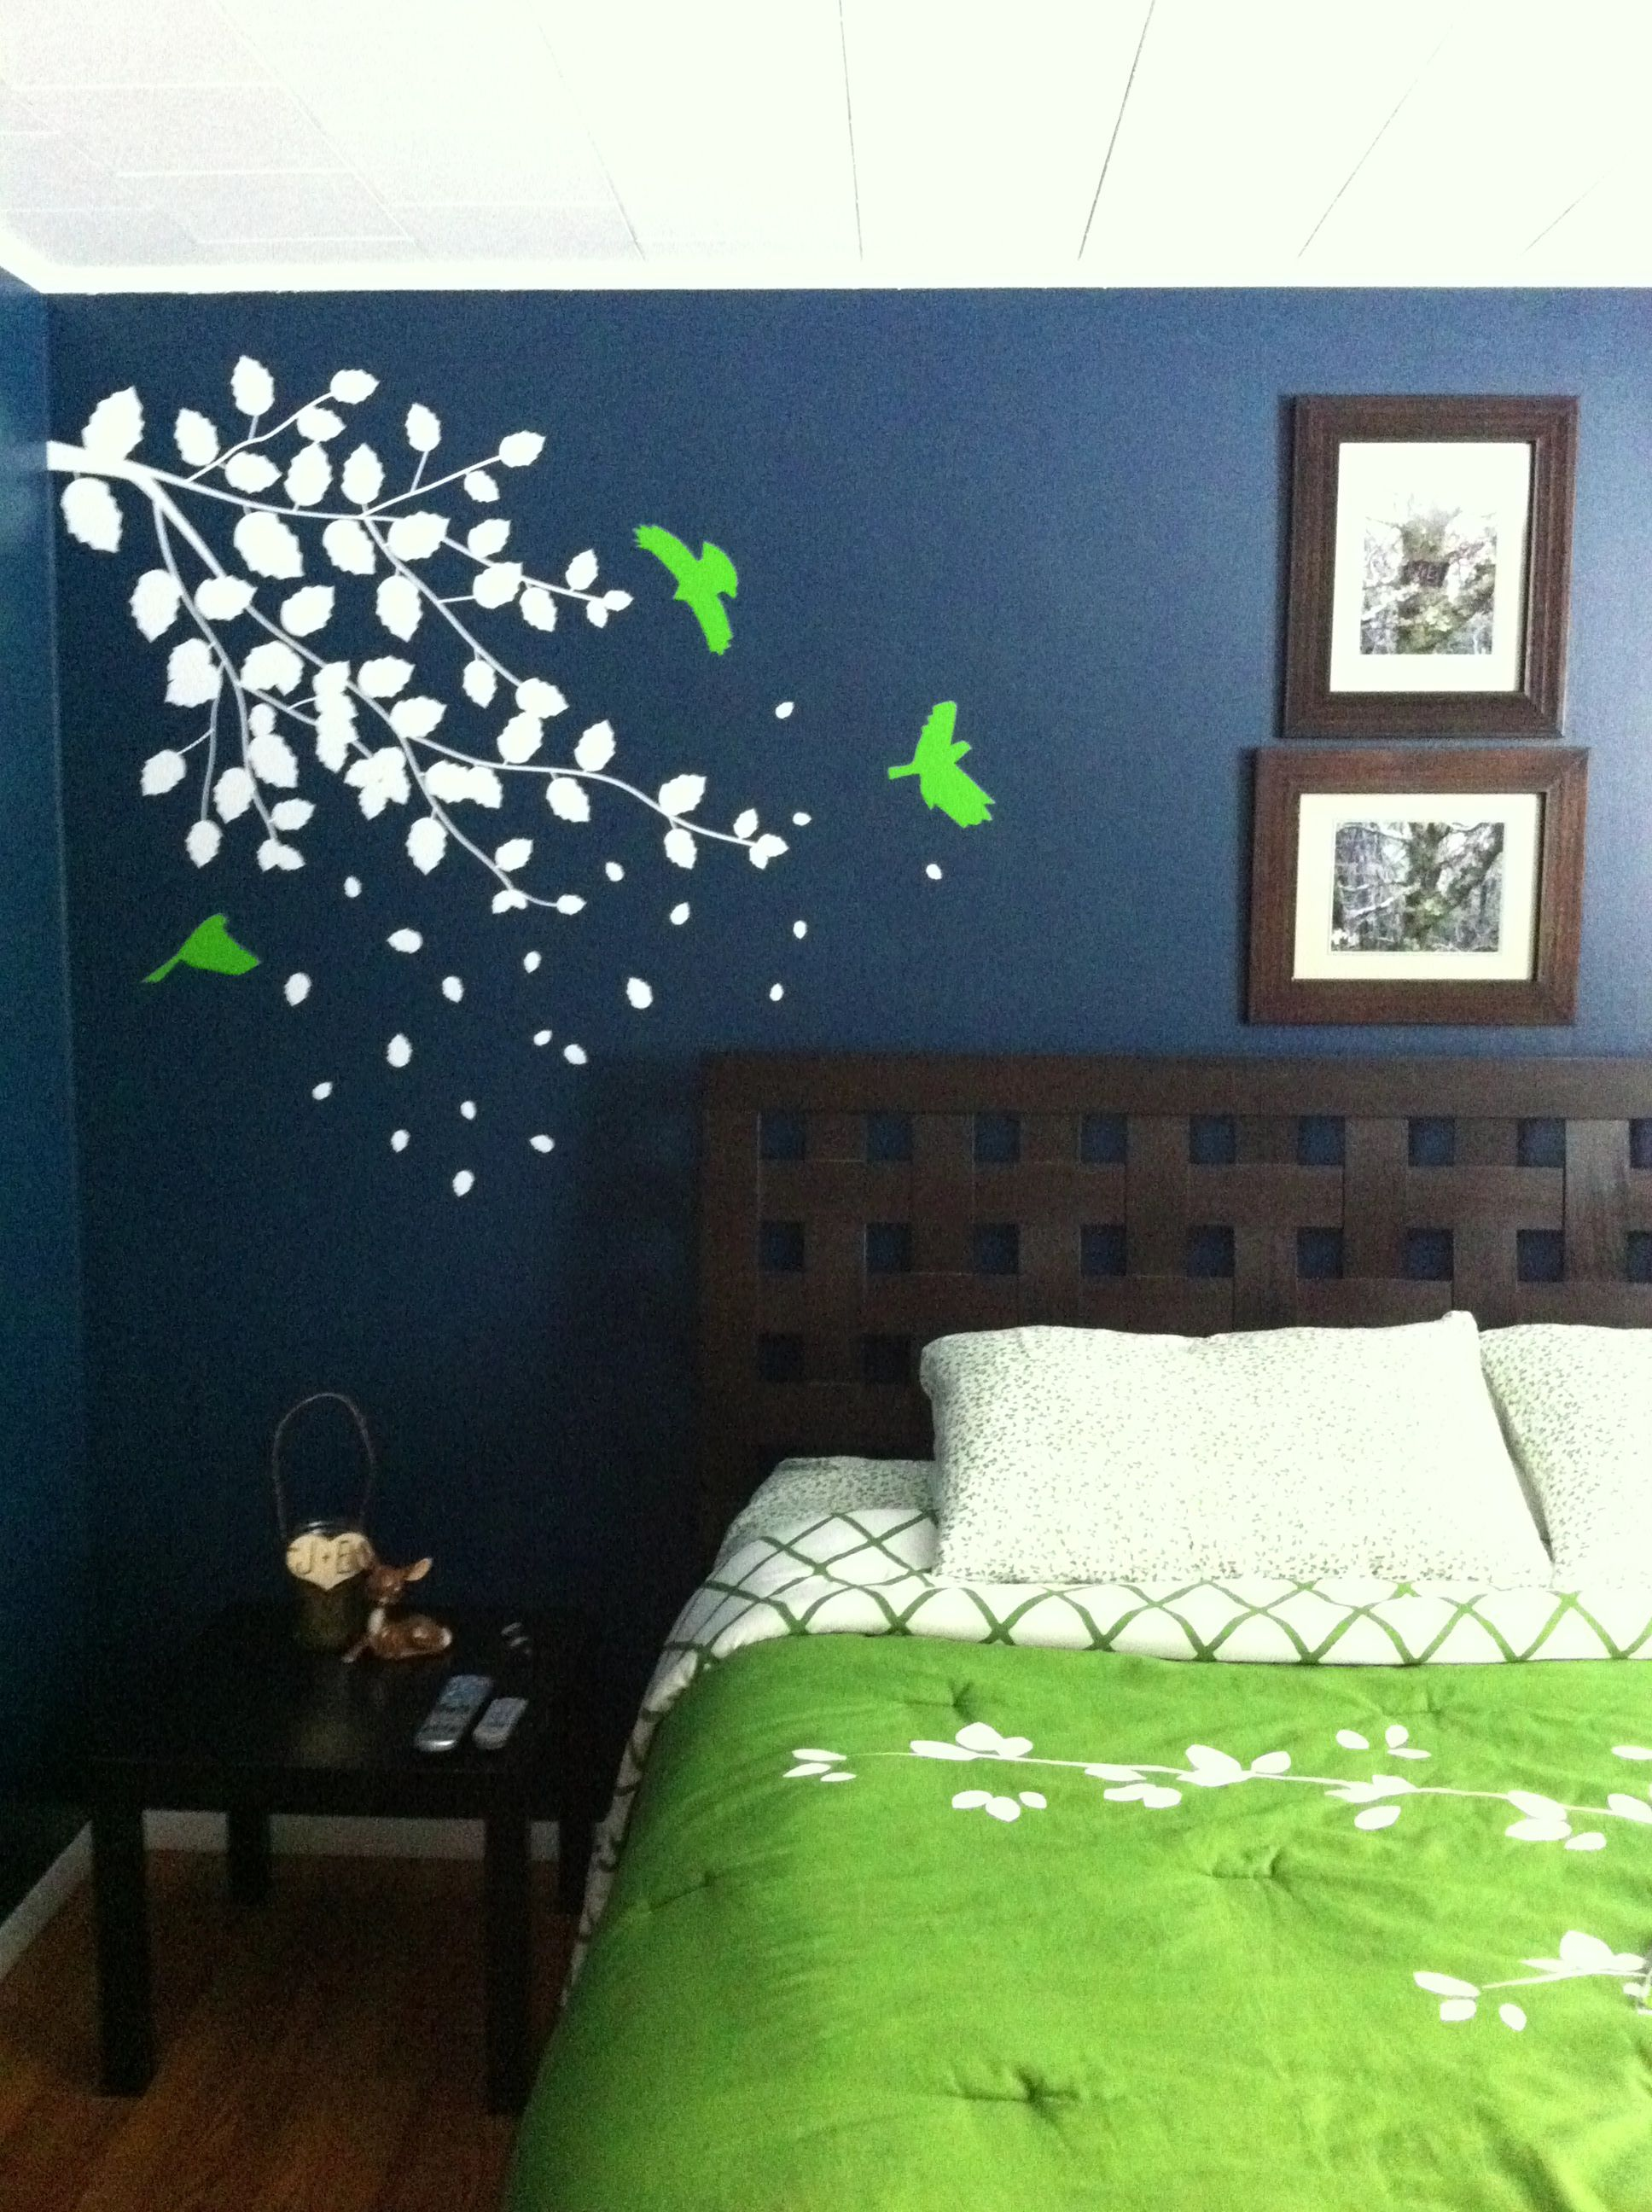 Dark Blue Bedroom With Bright Green Accents Wall Color Behr 39 Restless Sea 39 Bedding Kate Spade